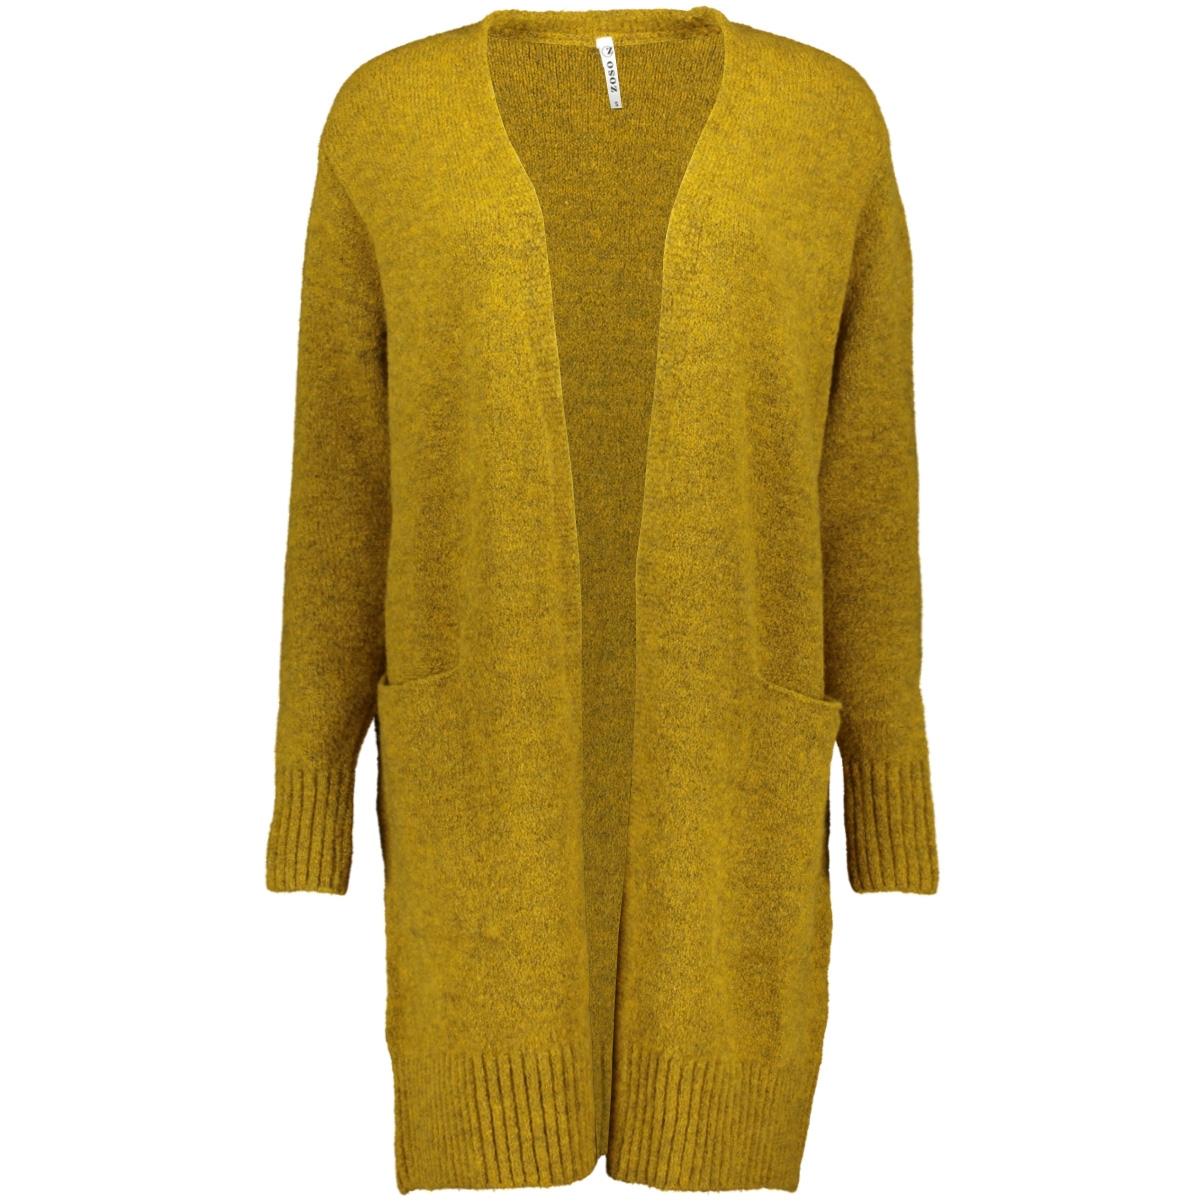 195 derby knitted cardigan zoso vest goldyellow